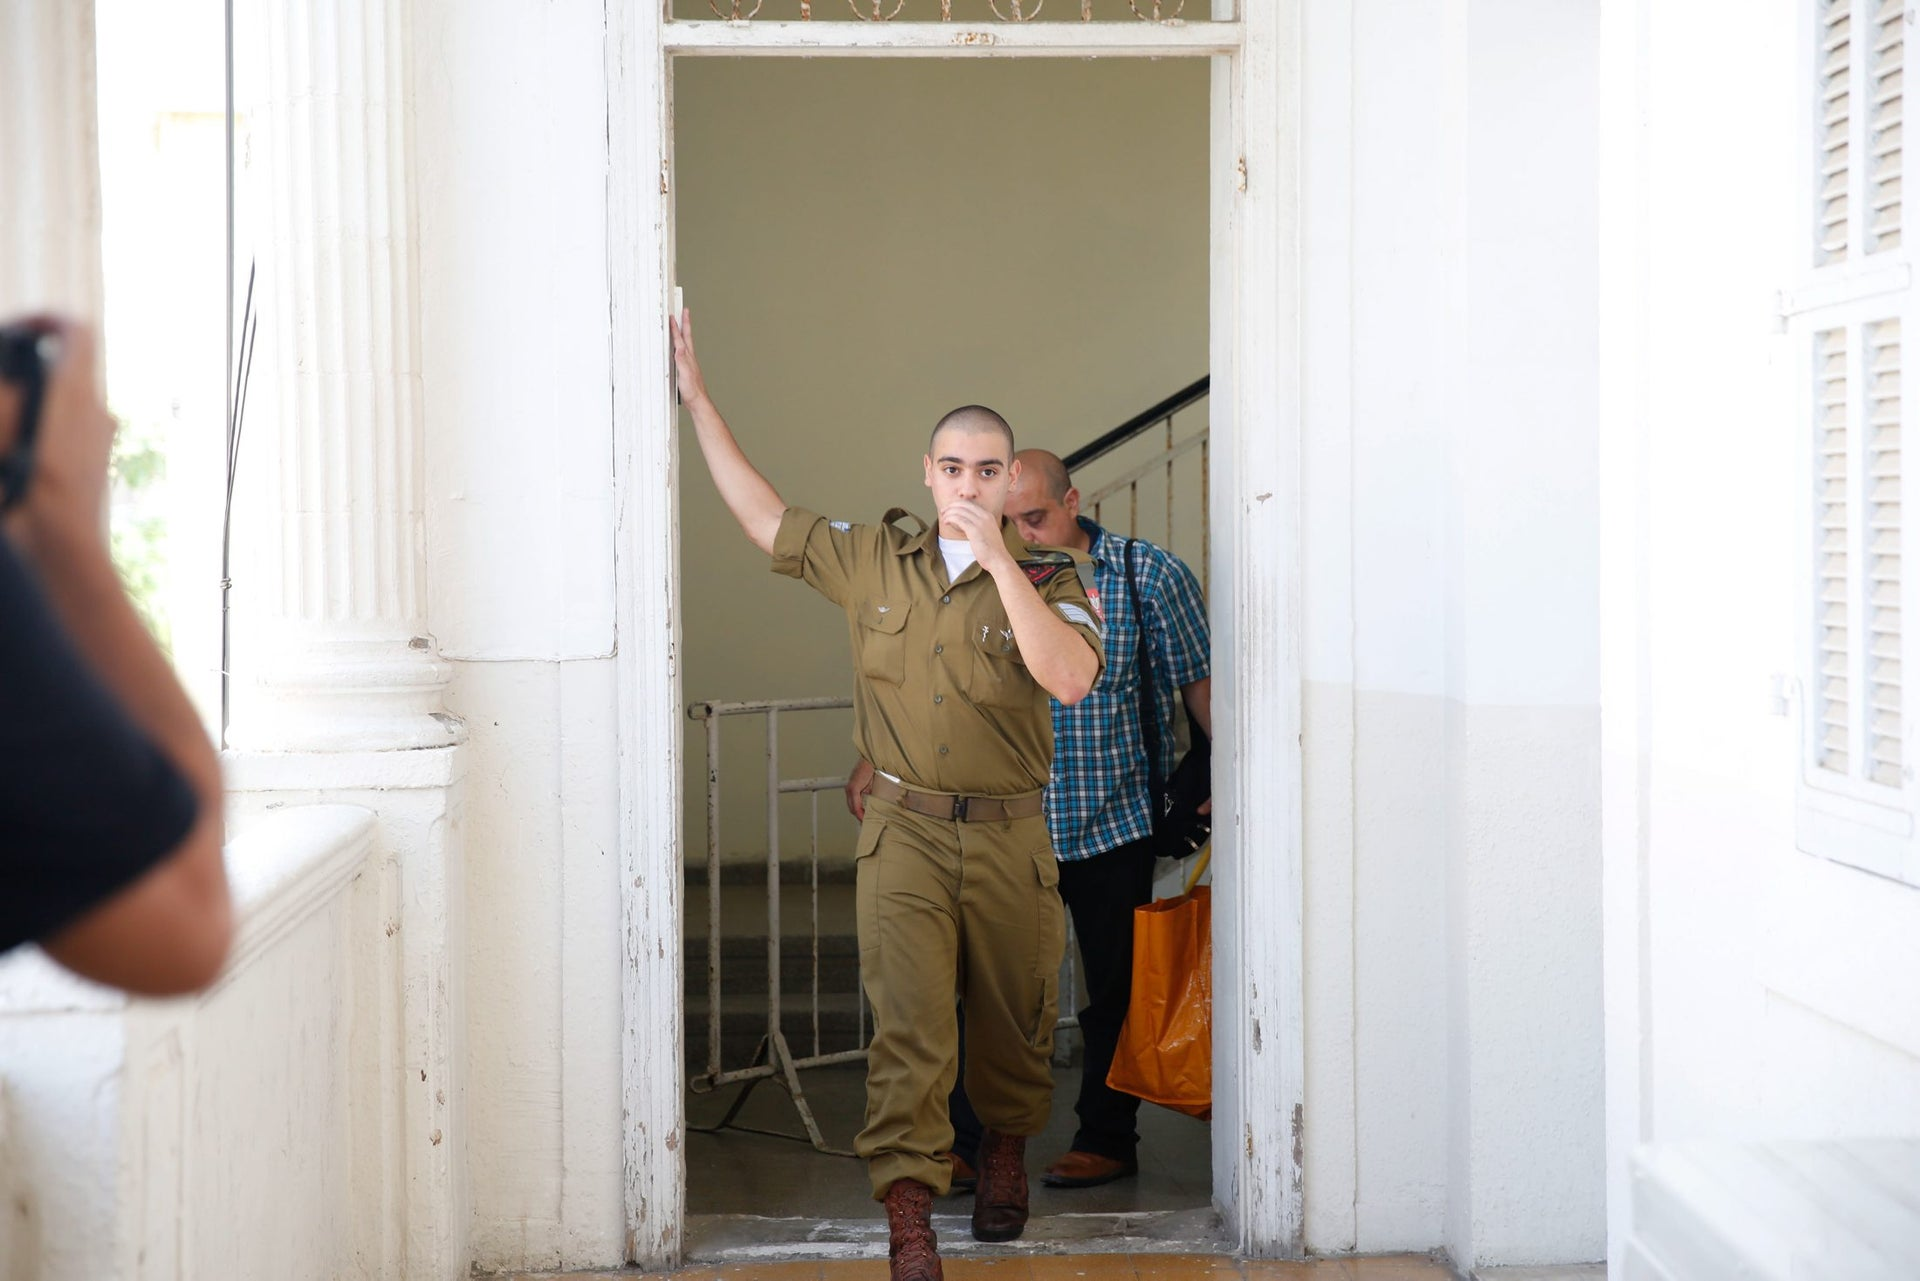 Elor Azaria at the entrance to Jaffa's military court.